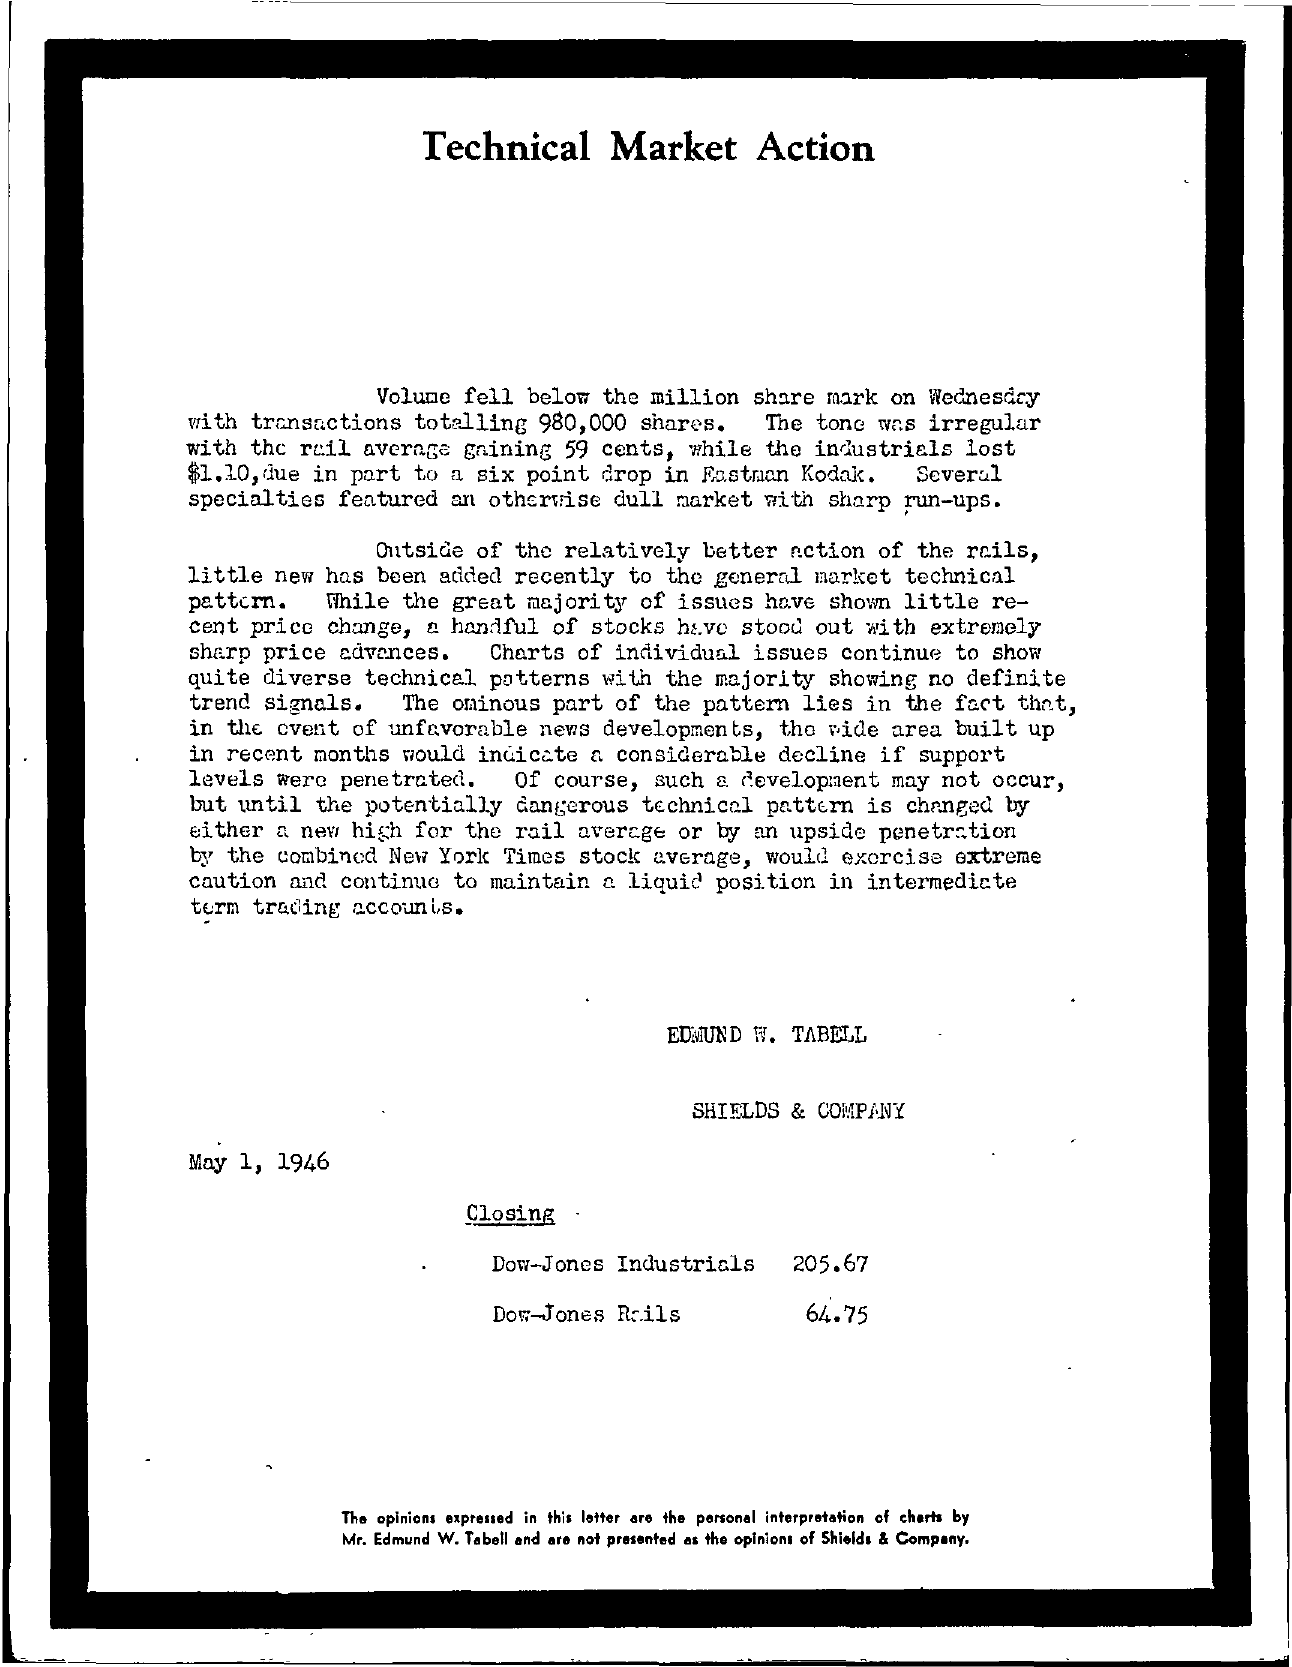 Tabell's Market Letter - May 01, 1946